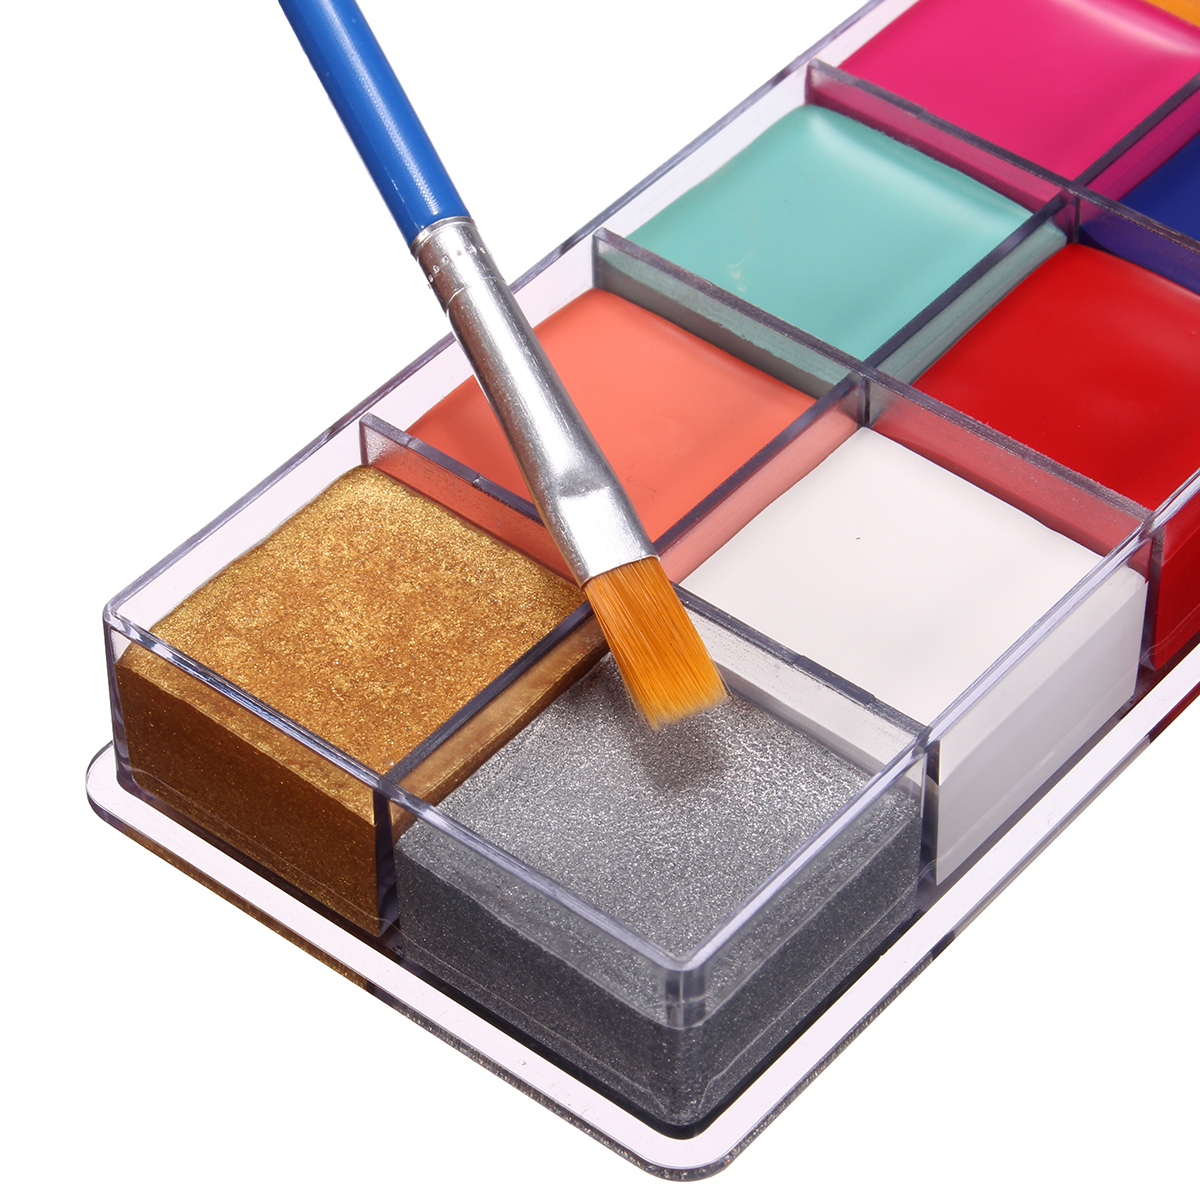 Pro 12 Colors Body Art Painting Oil Makeup Cosmetic Bright Party Facial Face with 4 Brushes